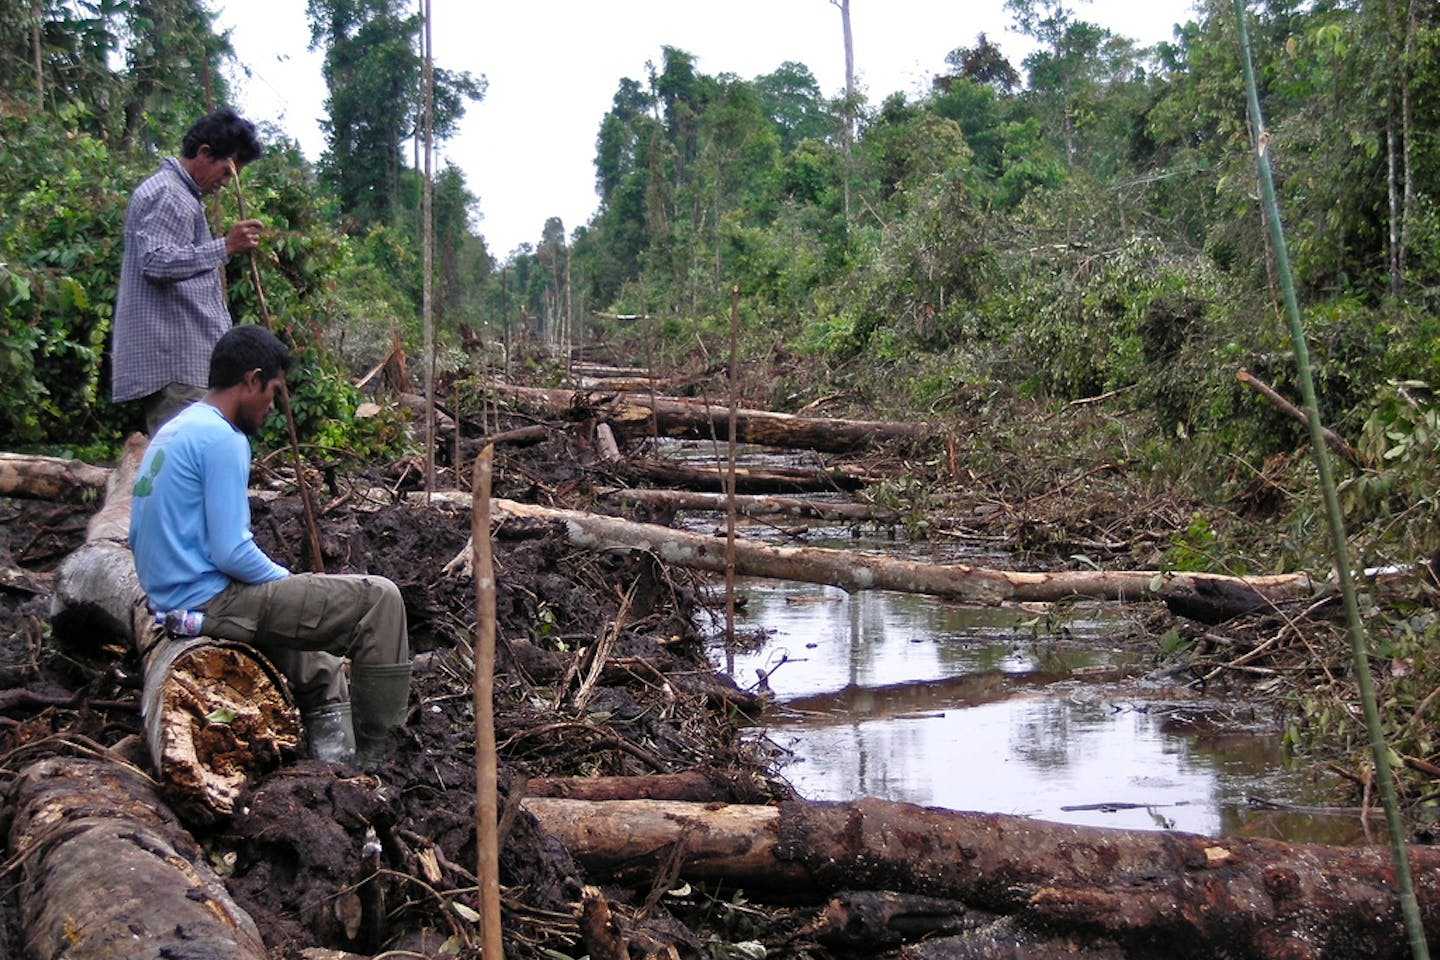 tearing forests in tanjung puting national park borneo